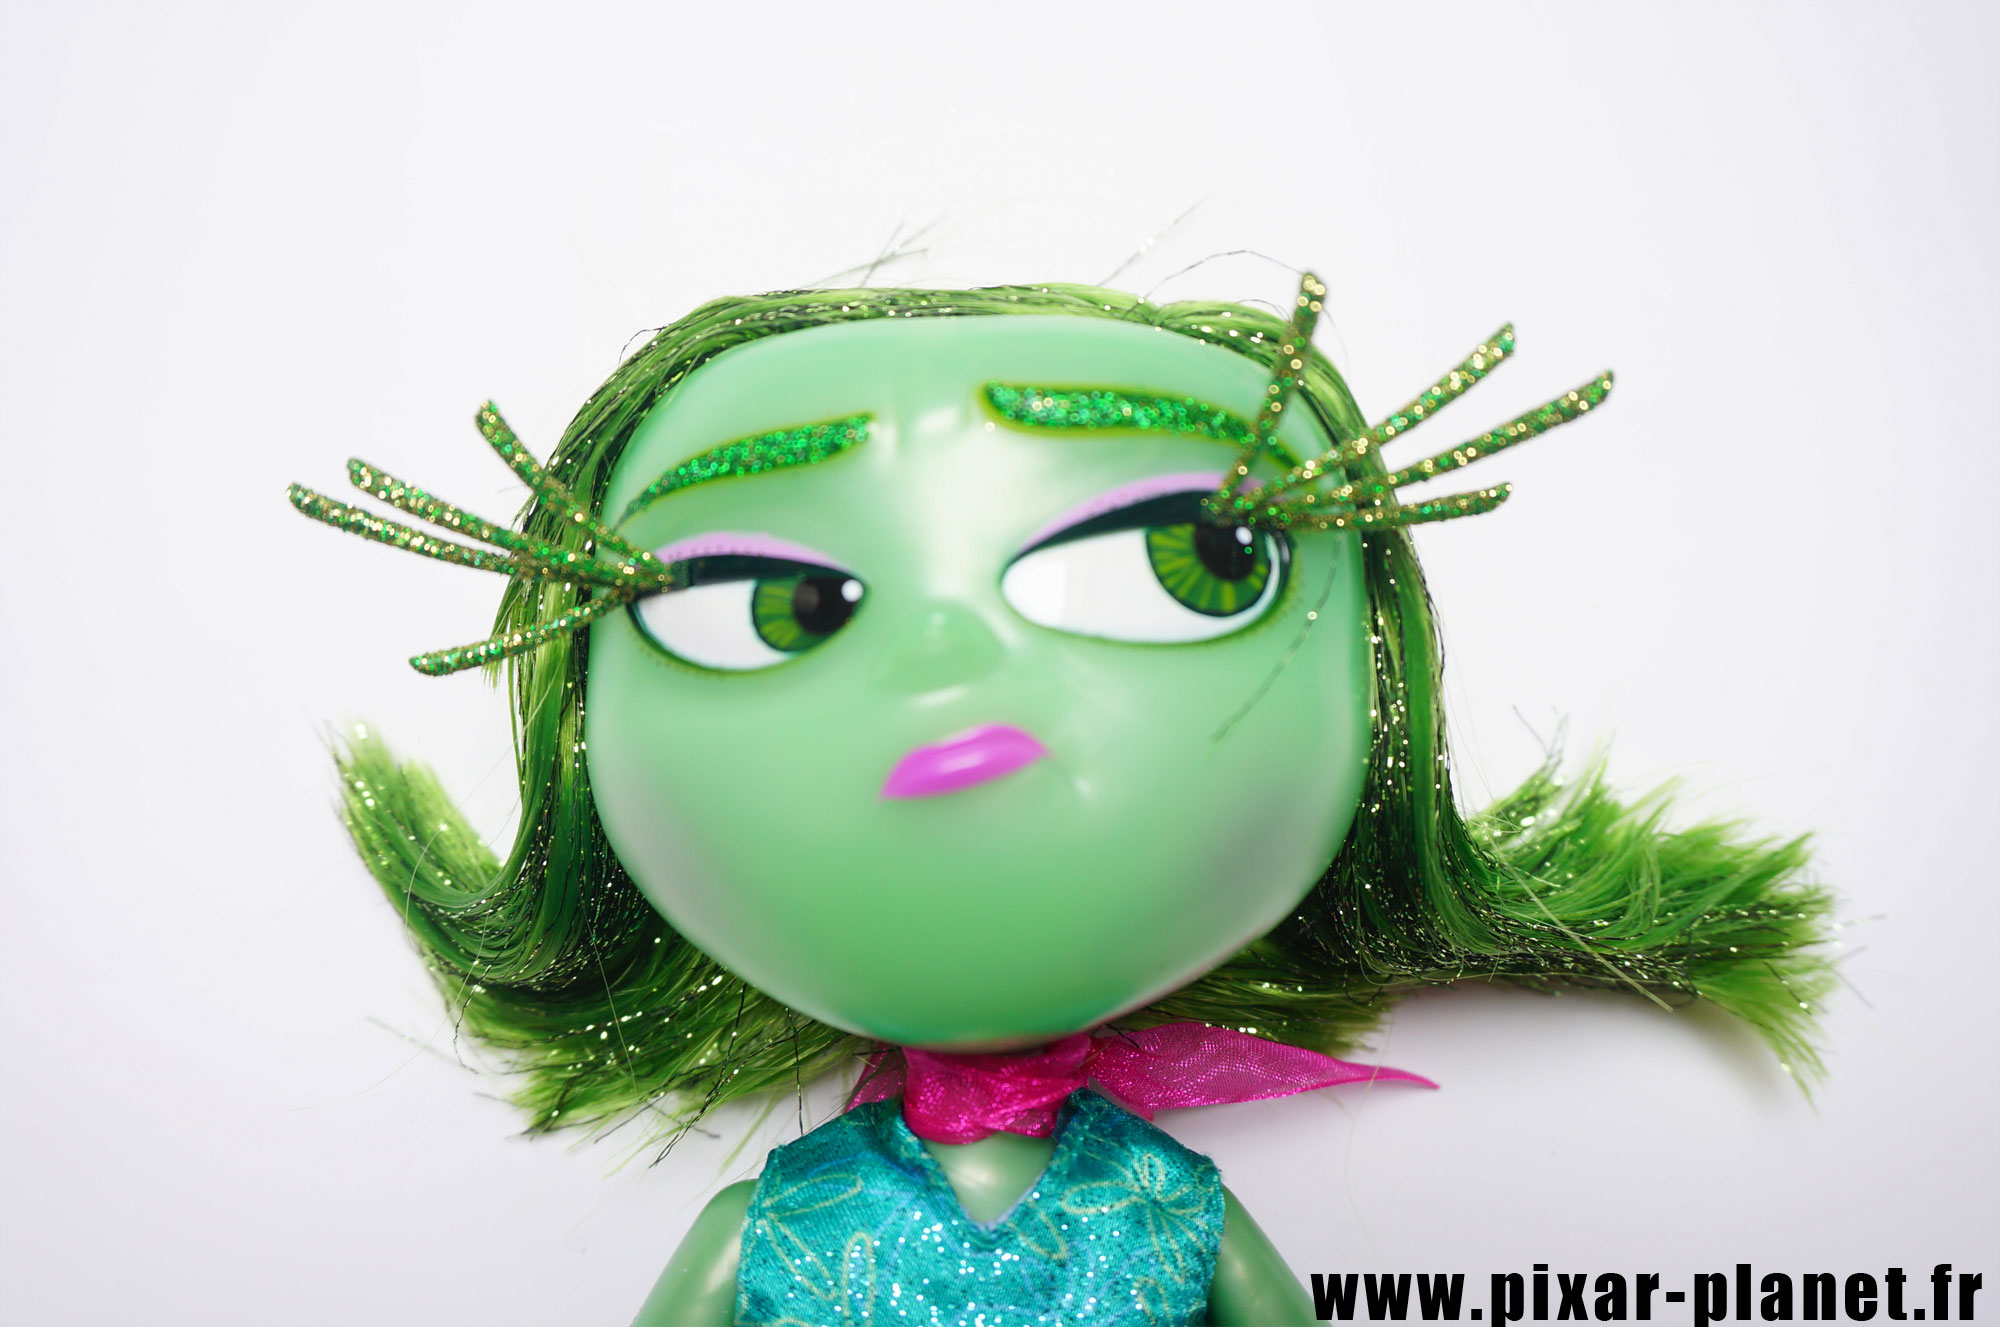 Pixar disney poupée toy vice versa inside out dégoût disgust